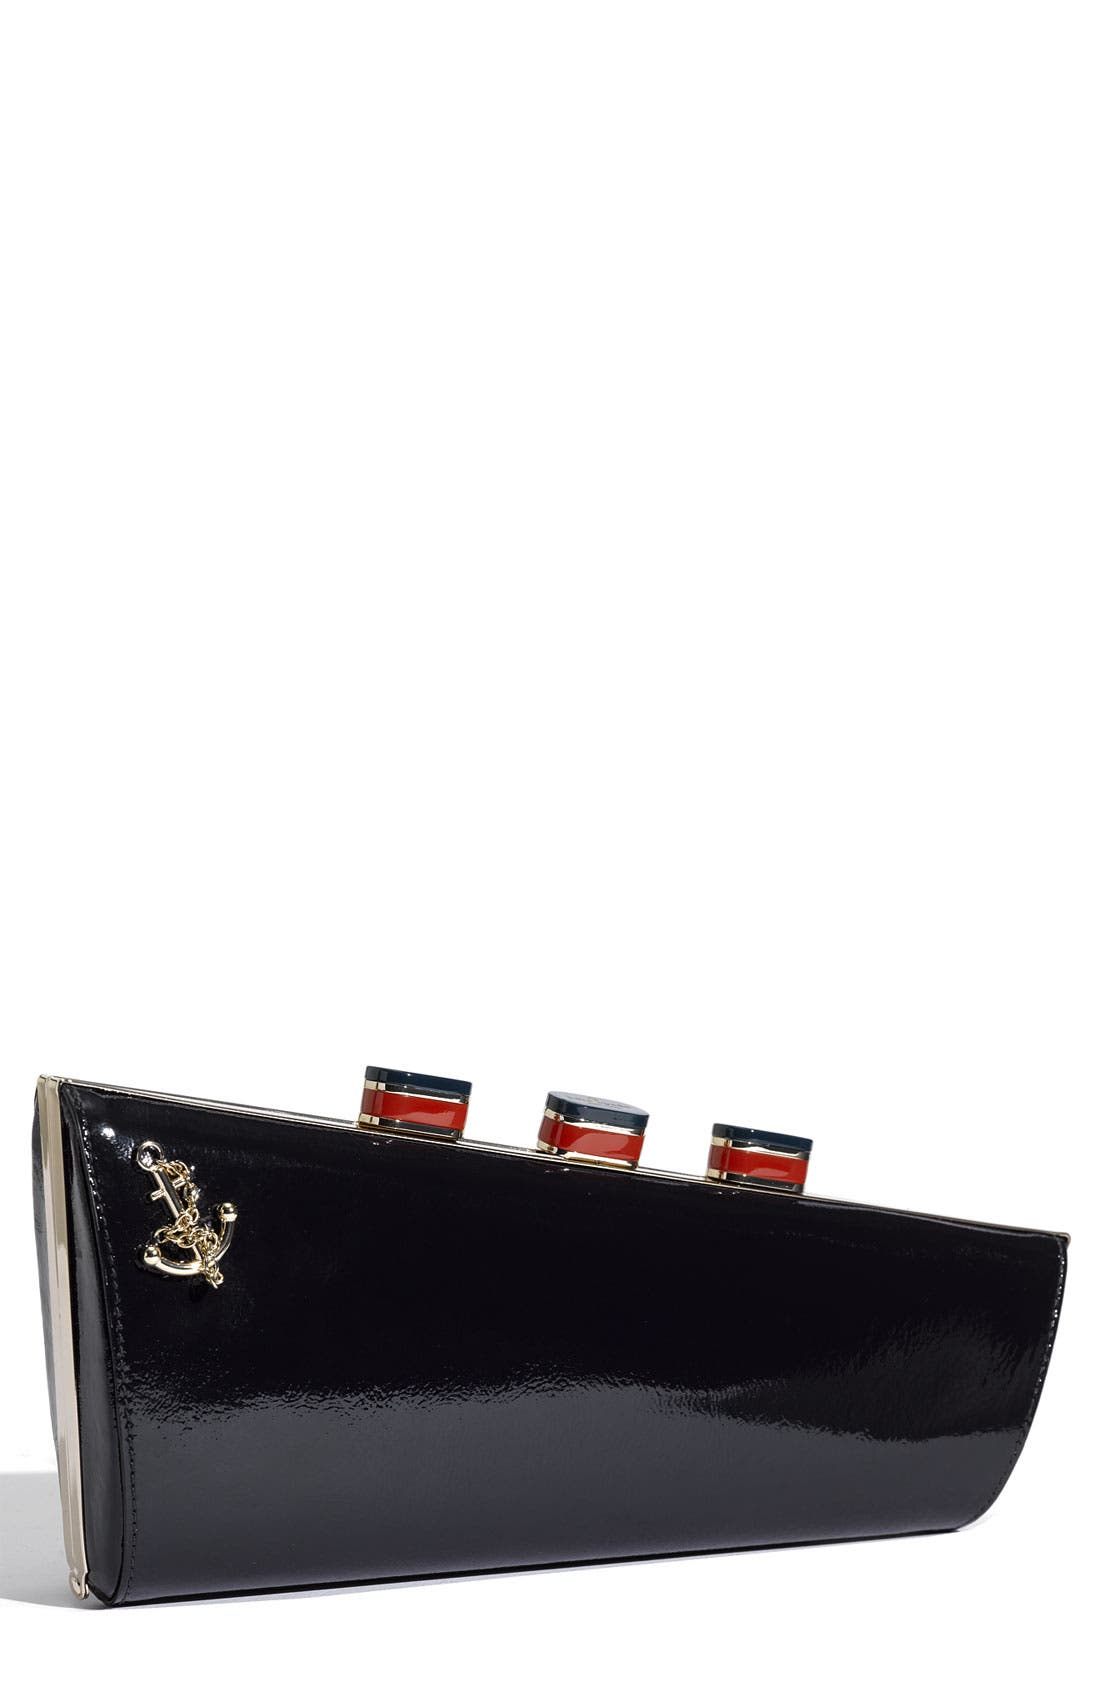 Alternate Image 1 Selected - kate spade new york 'barclay street' ship clutch